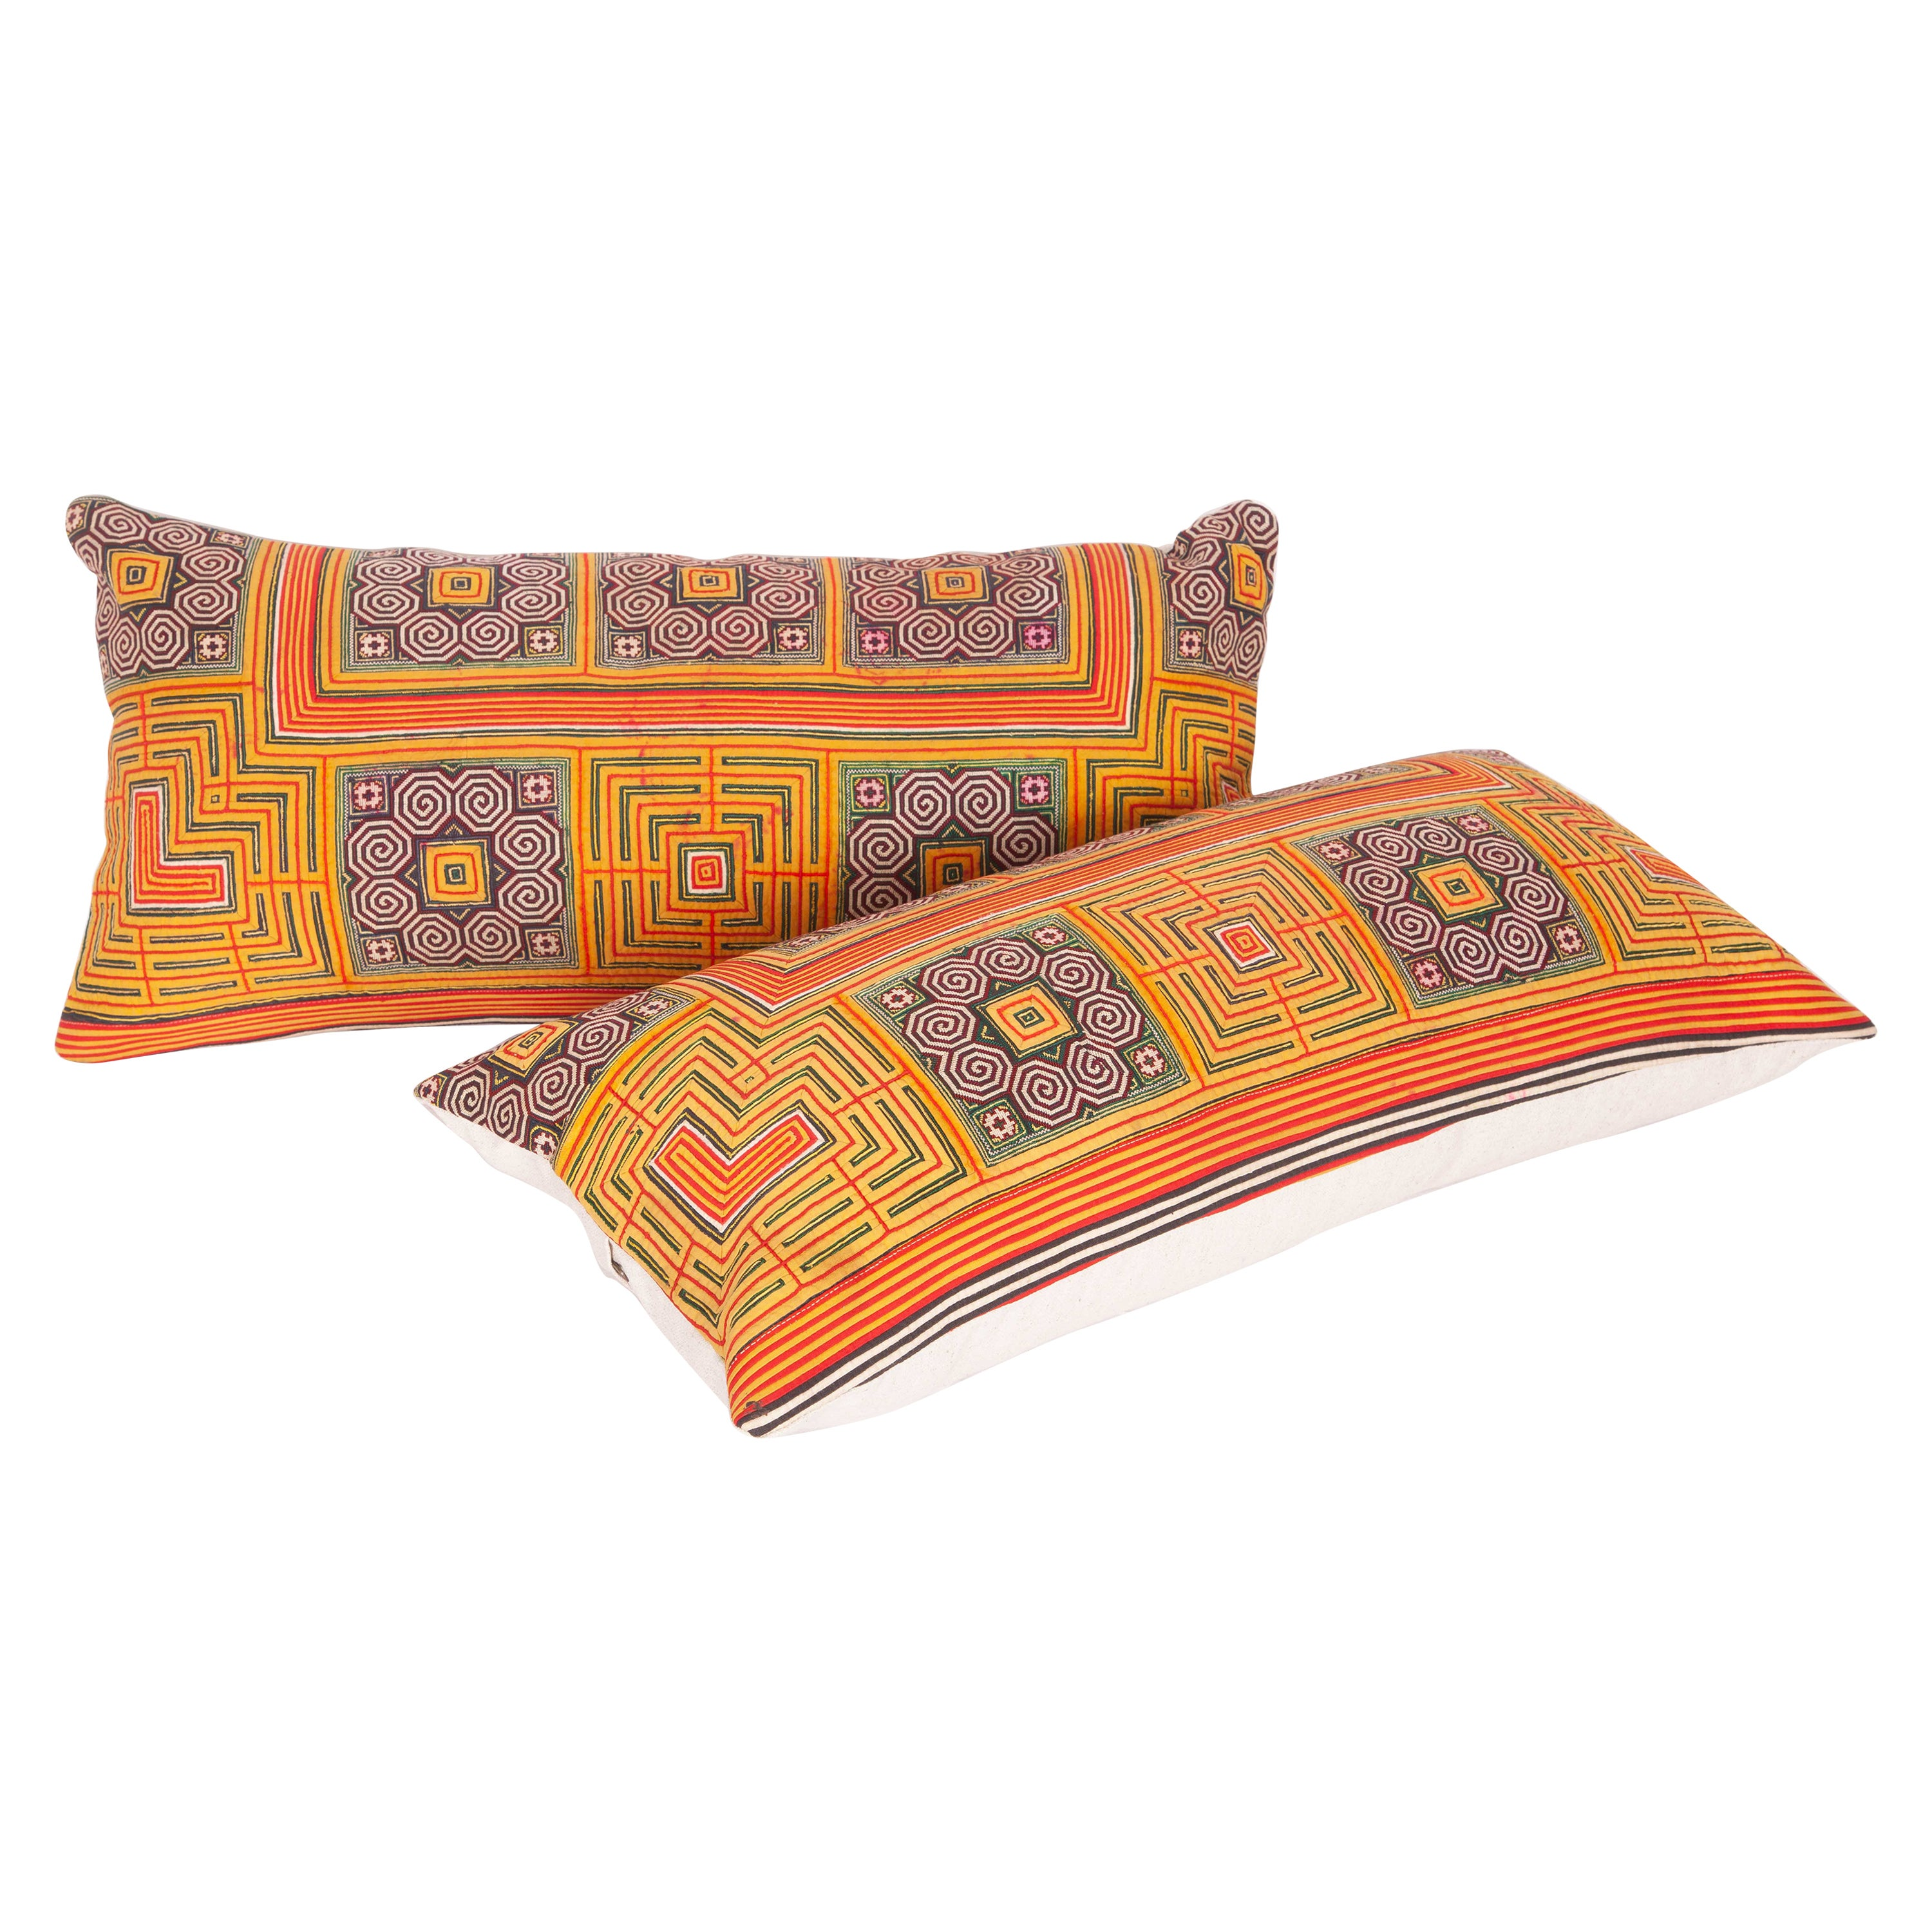 Vintage Hmong Hill Tribe Pillow Cases, Mid-20th Century